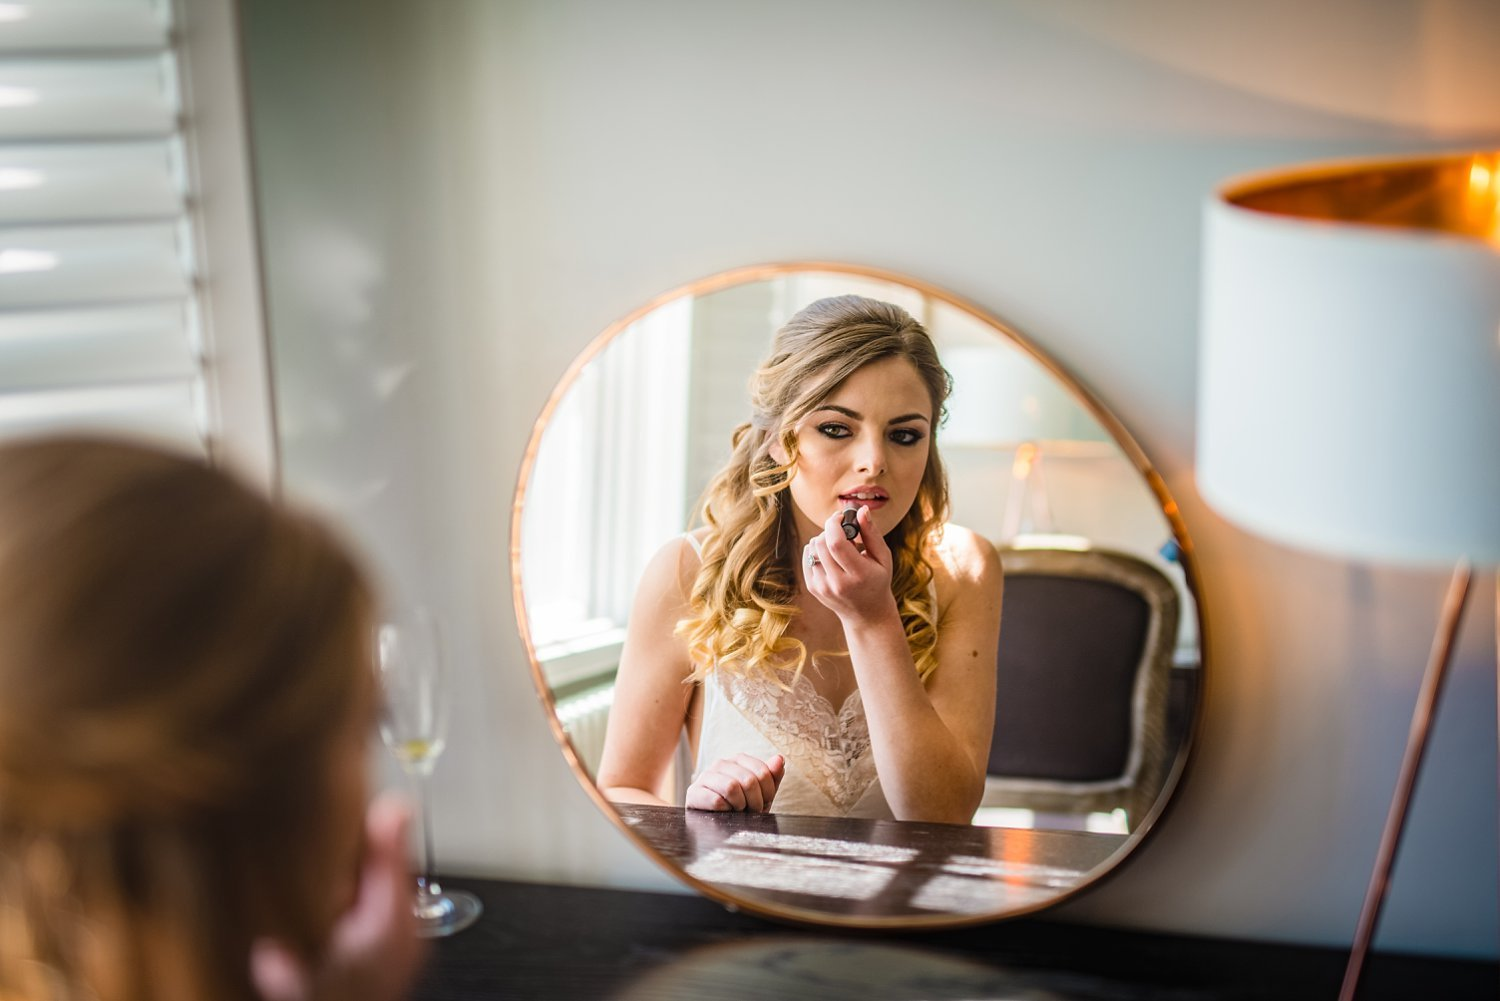 Northbrook Park Wedding - bride is putting lipstick on in fron of the mirror